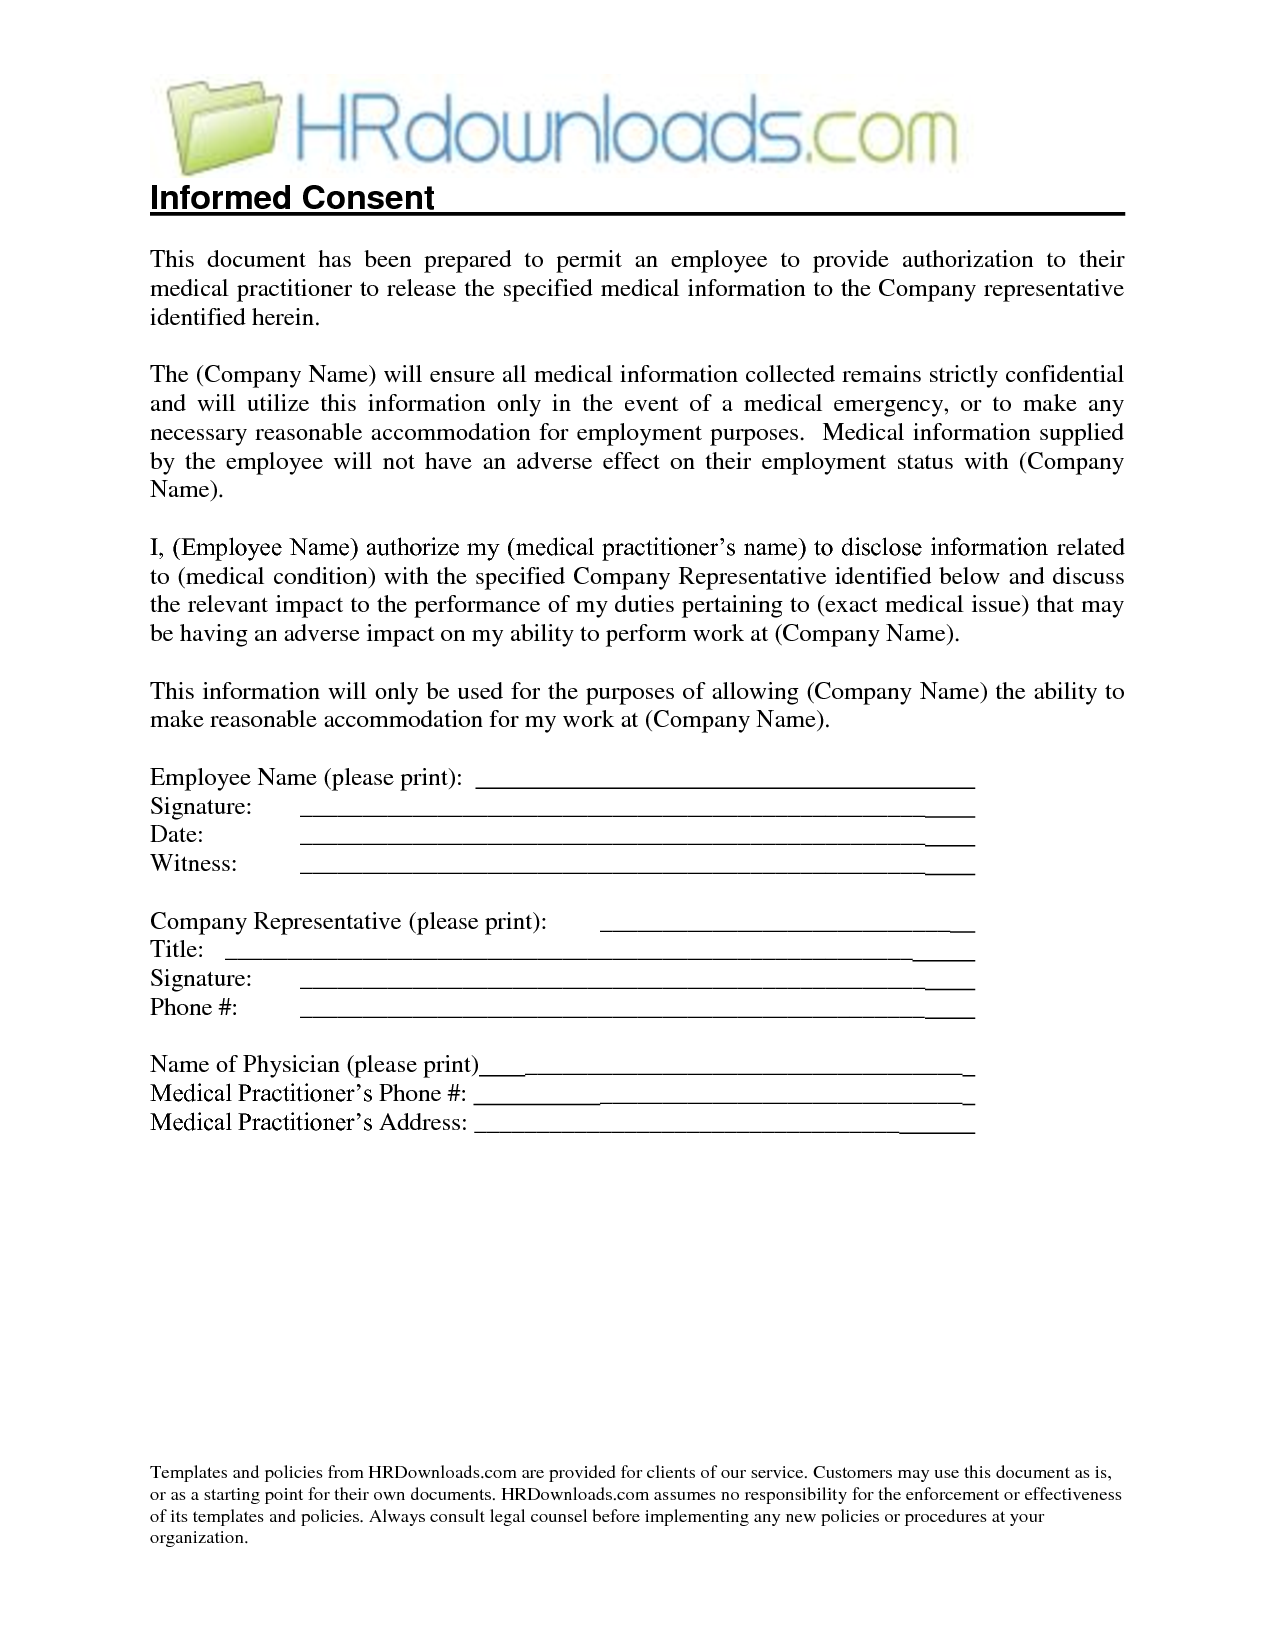 Medical Release Form Sample | Medical Release Of Information Form Template Authorization To